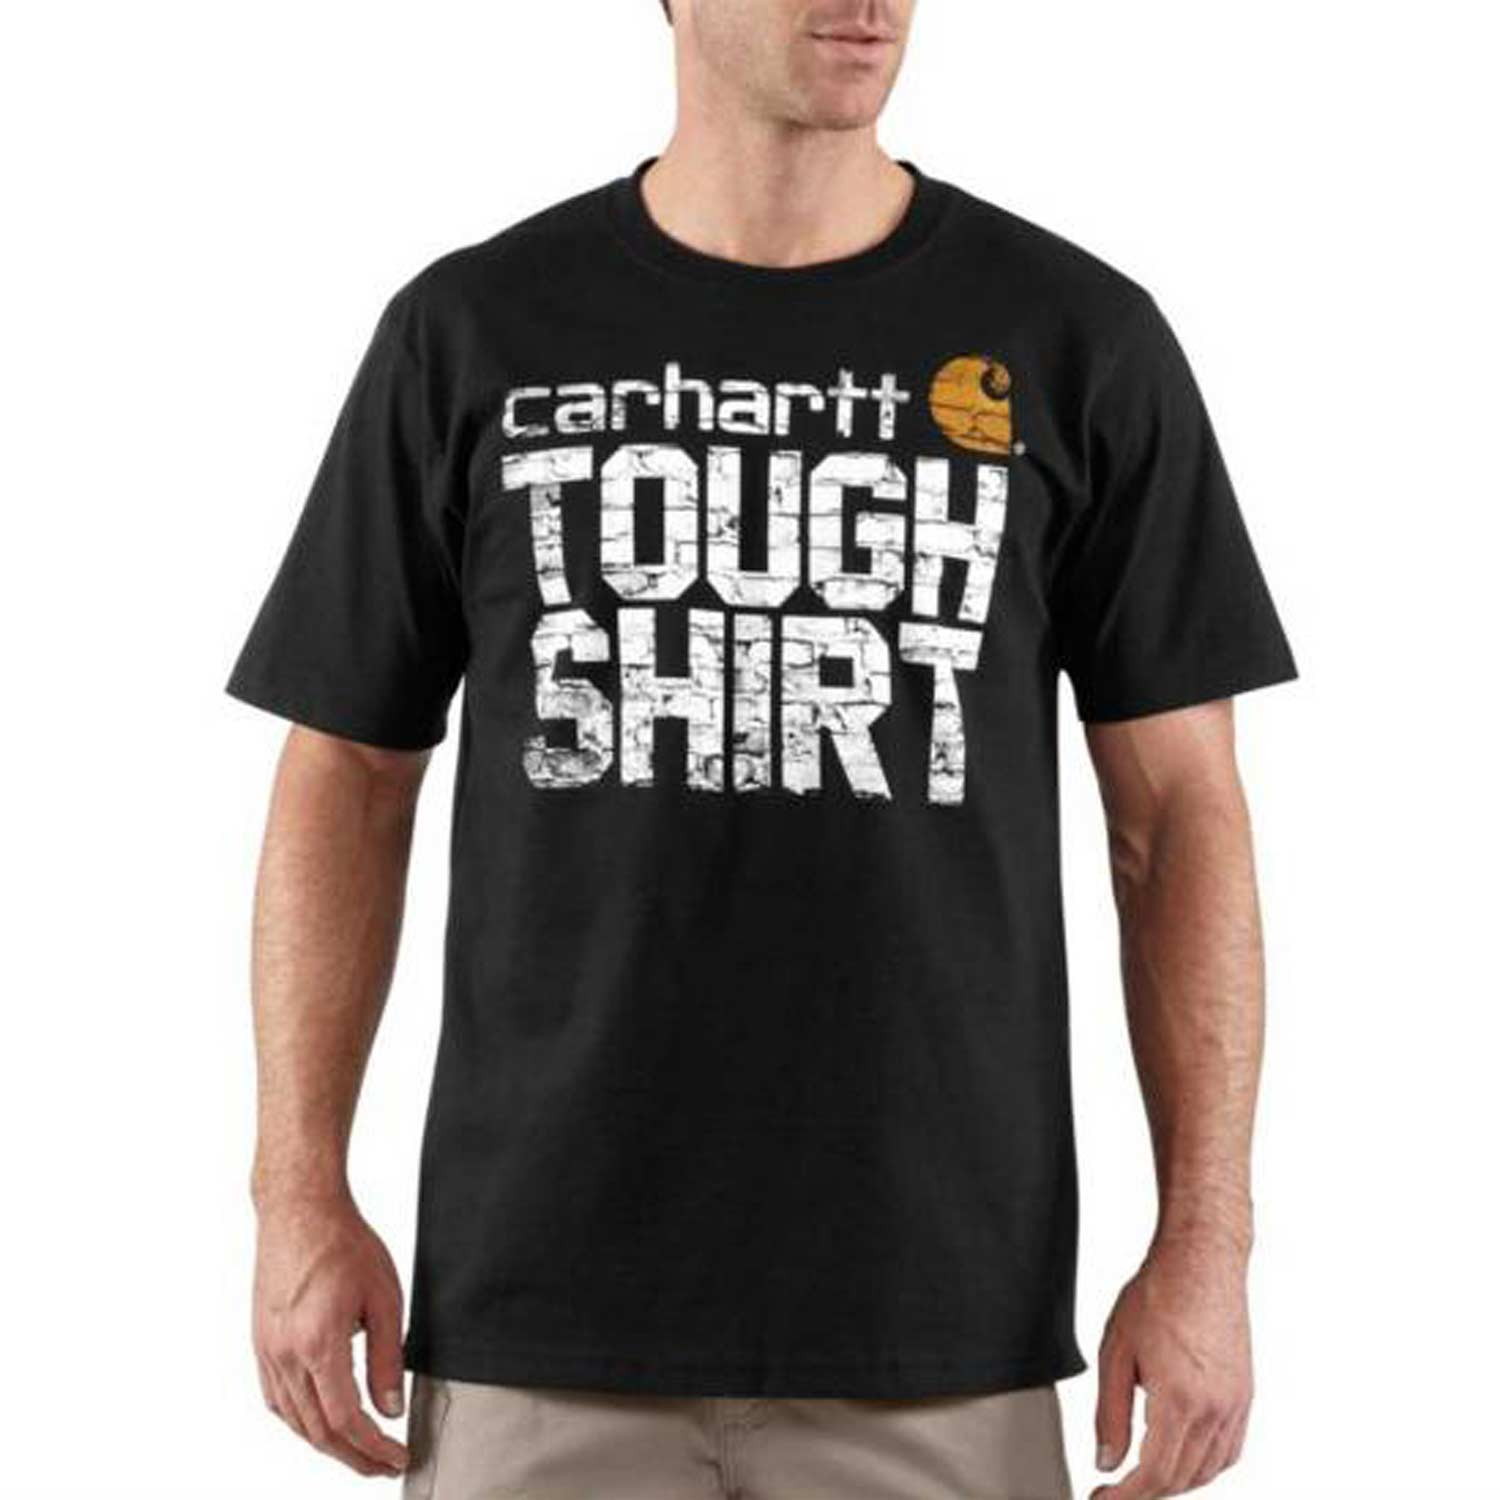 Carhartt Tough Shirt Logo Shirt